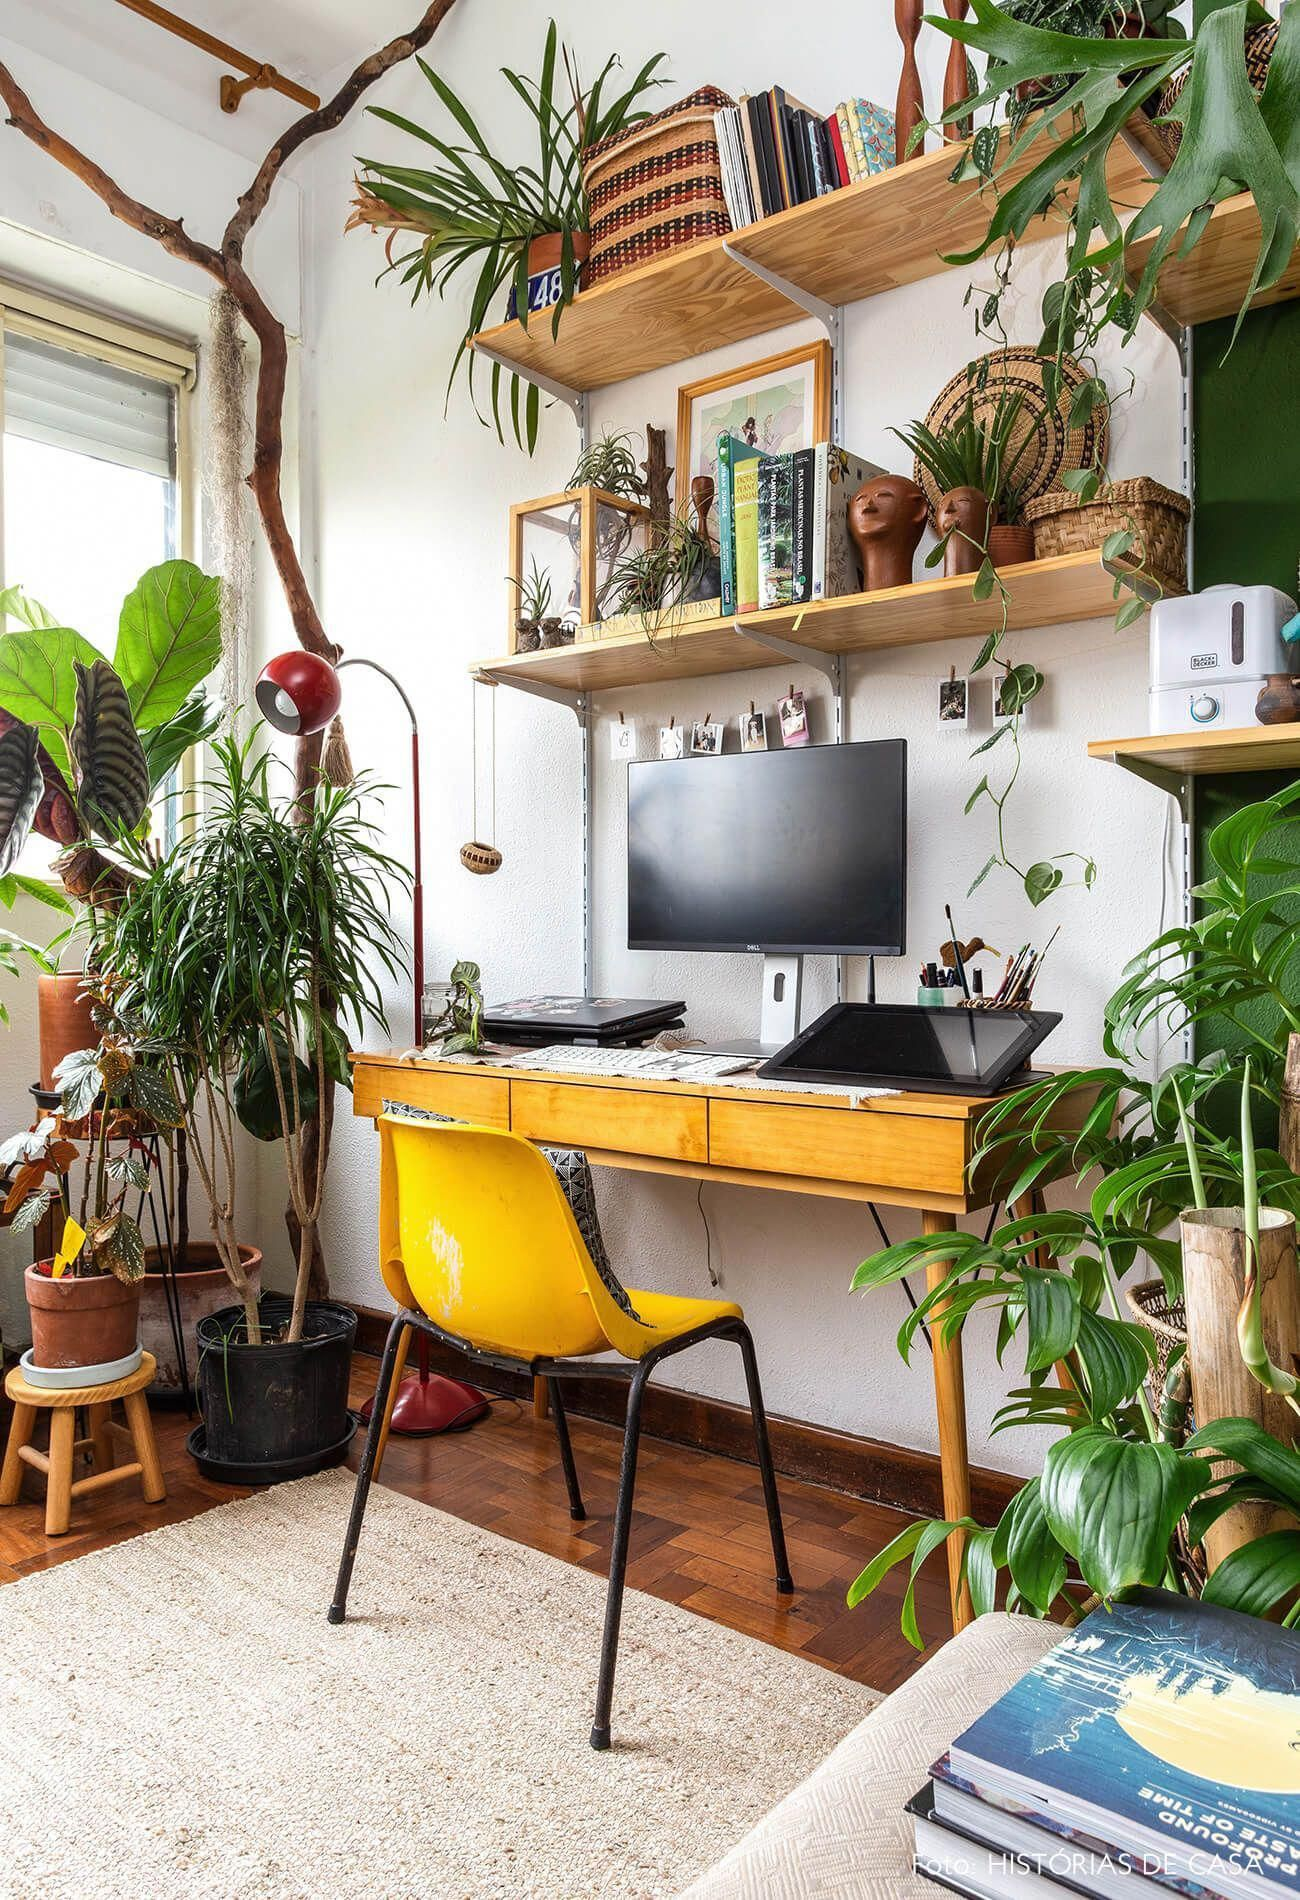 Ideas To Make Your Home More Eco-Friendly  Home office furniture